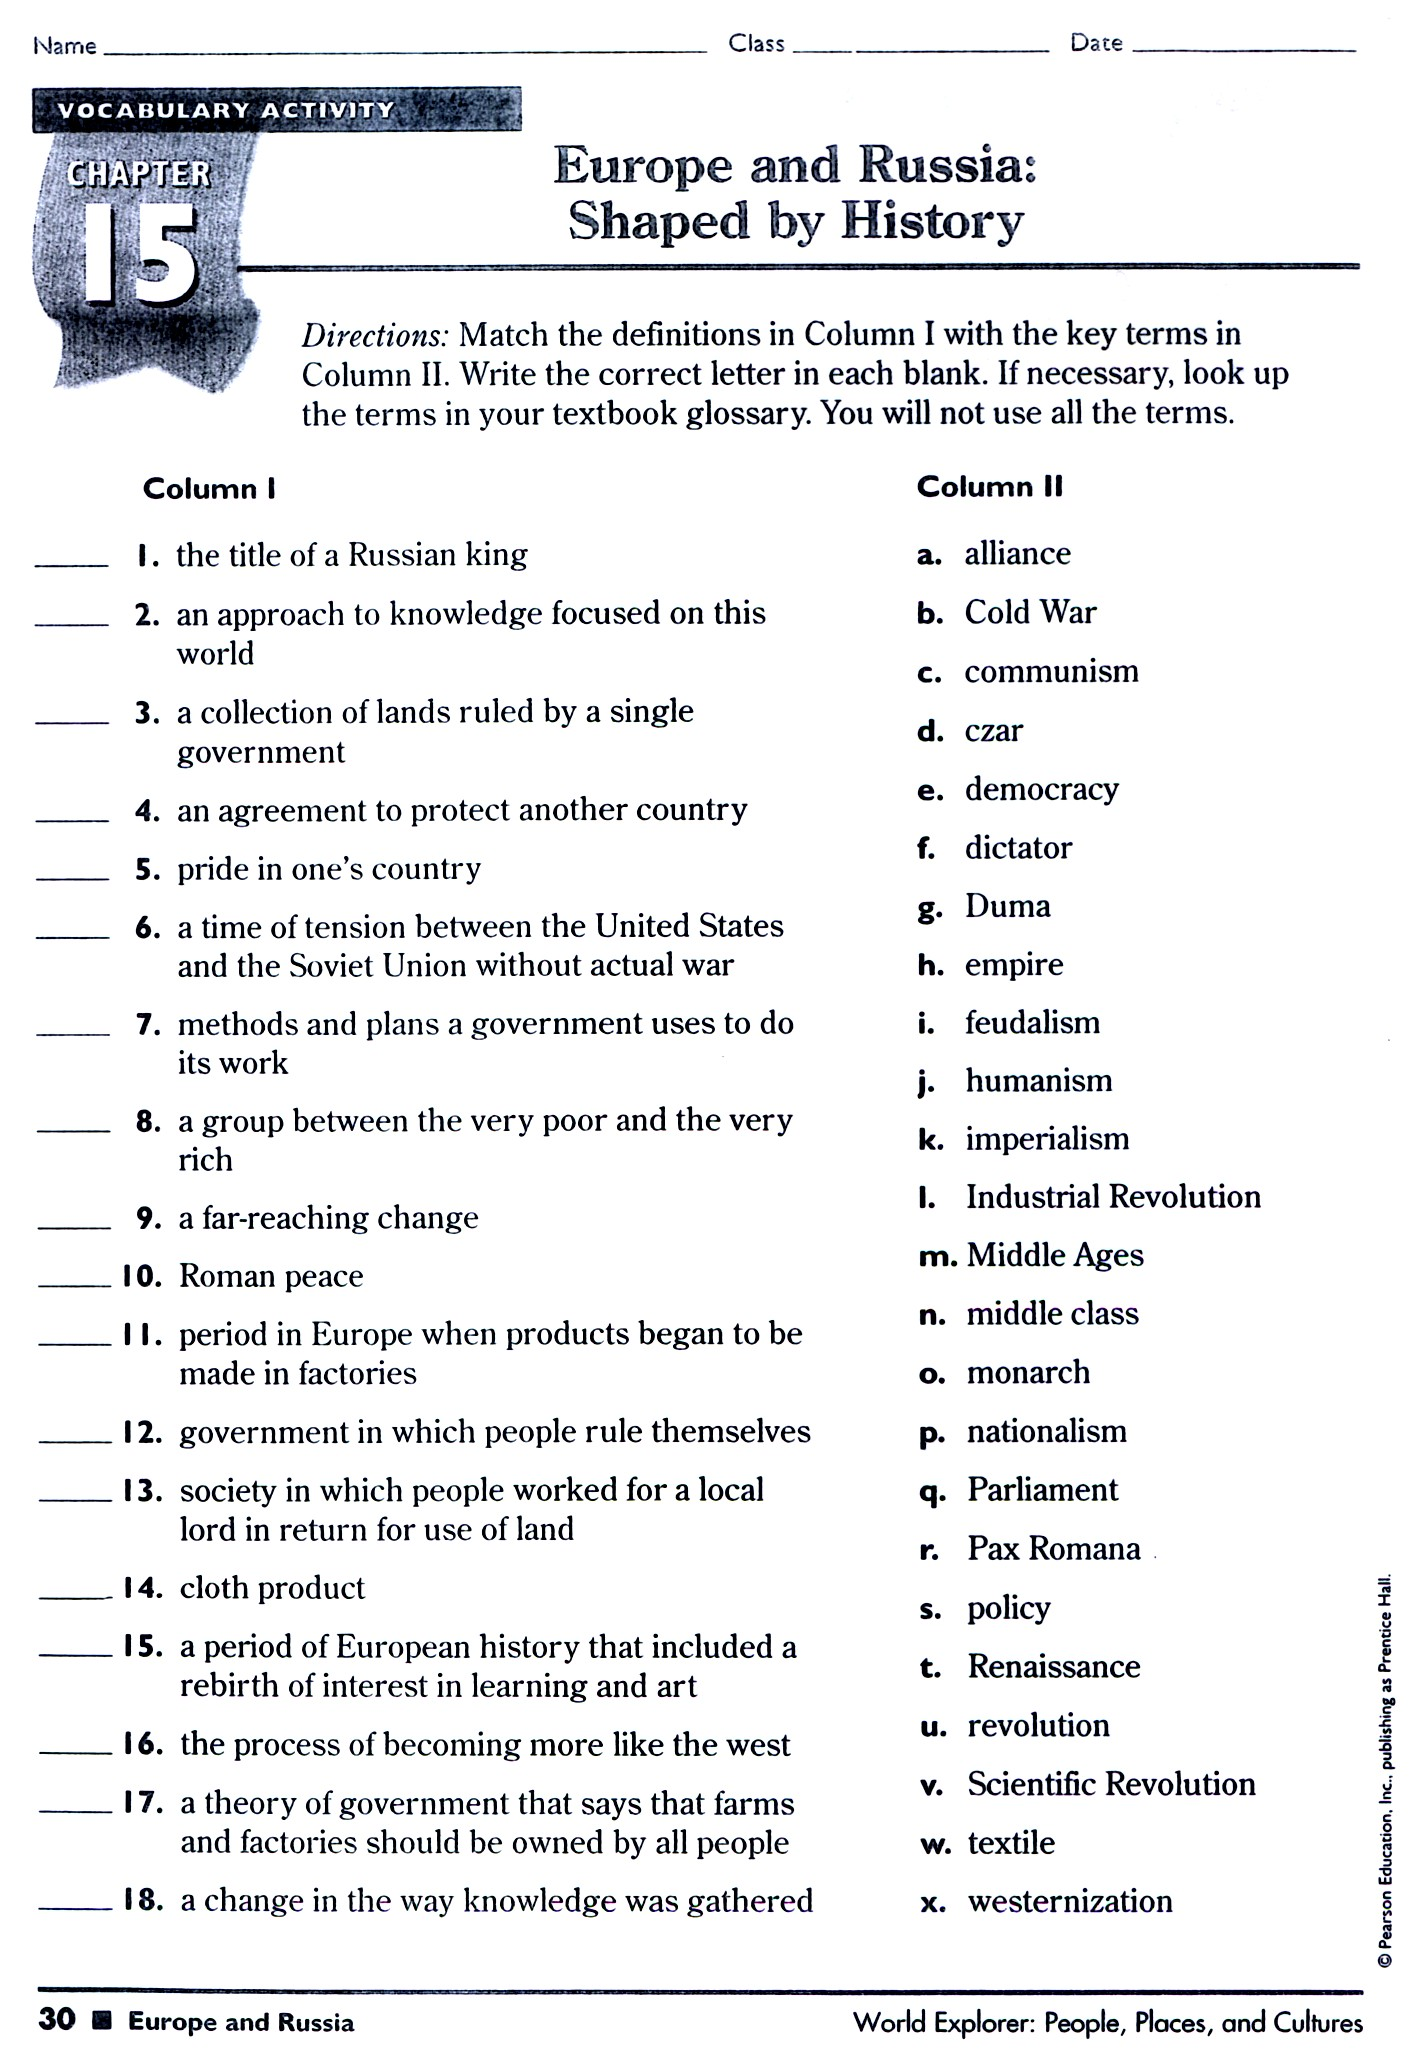 7Th Grade History Worksheets Free Worksheets Library – Point of View Worksheets Middle School